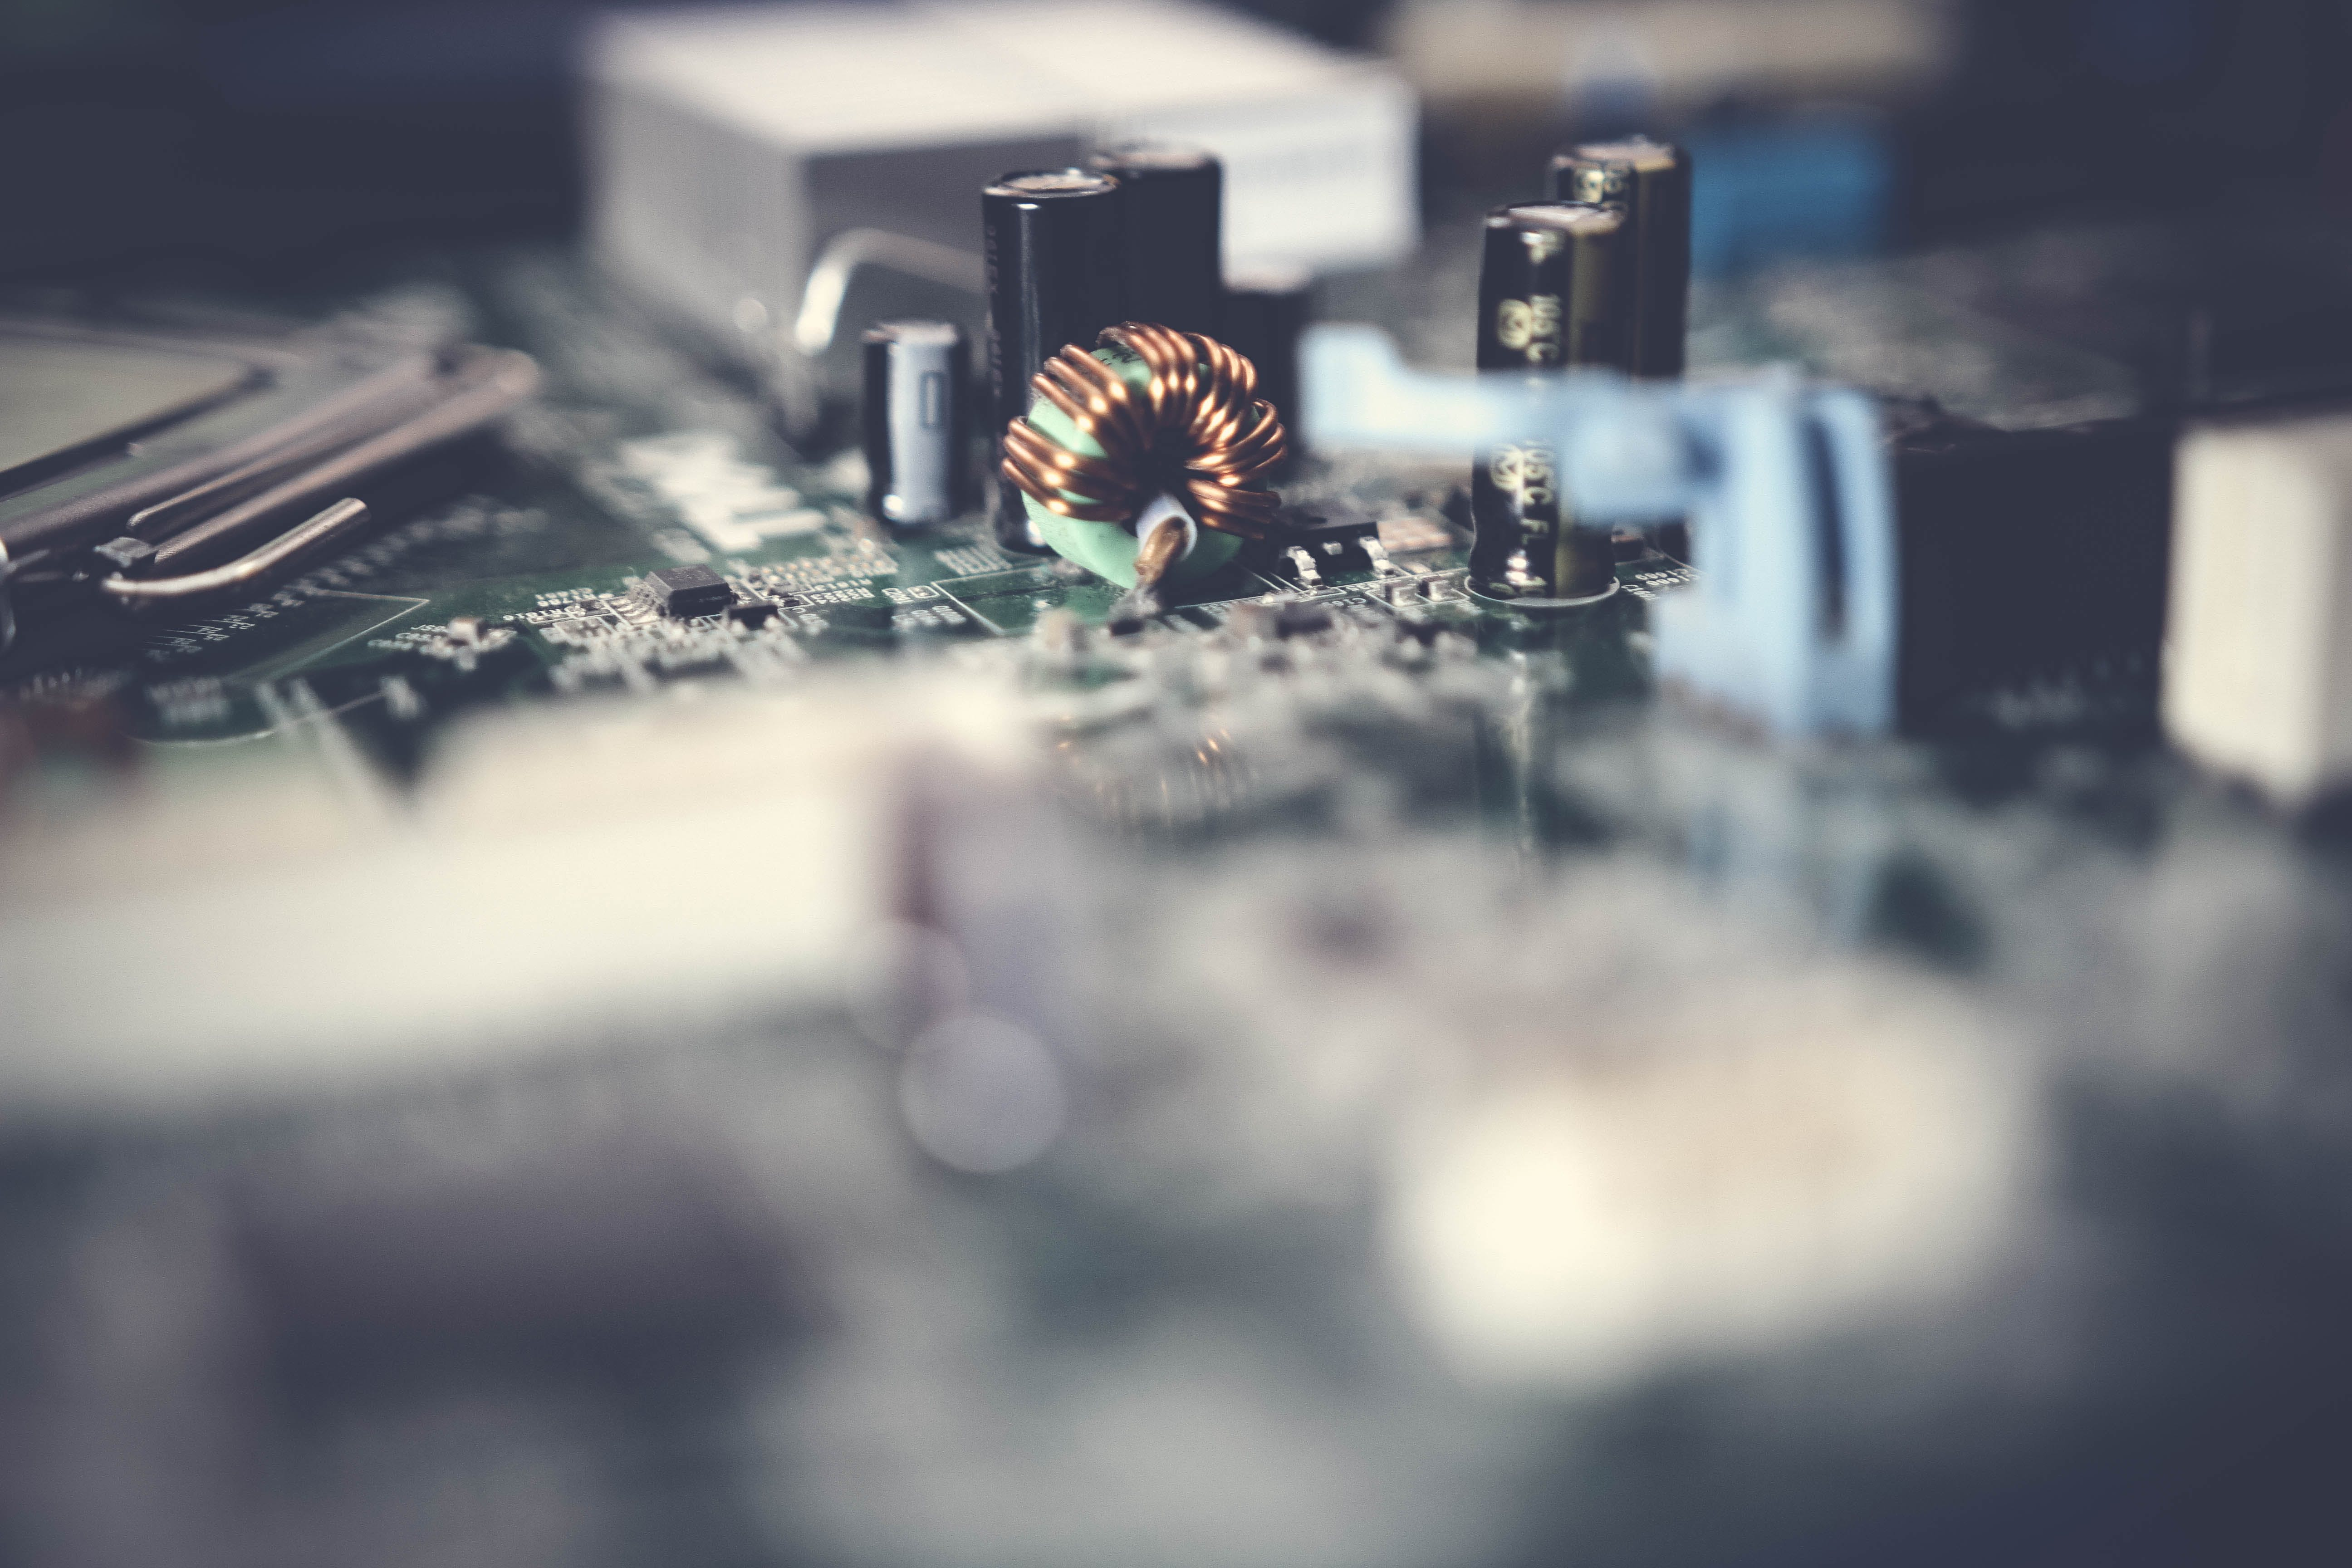 Close-up Photo of Motherboard